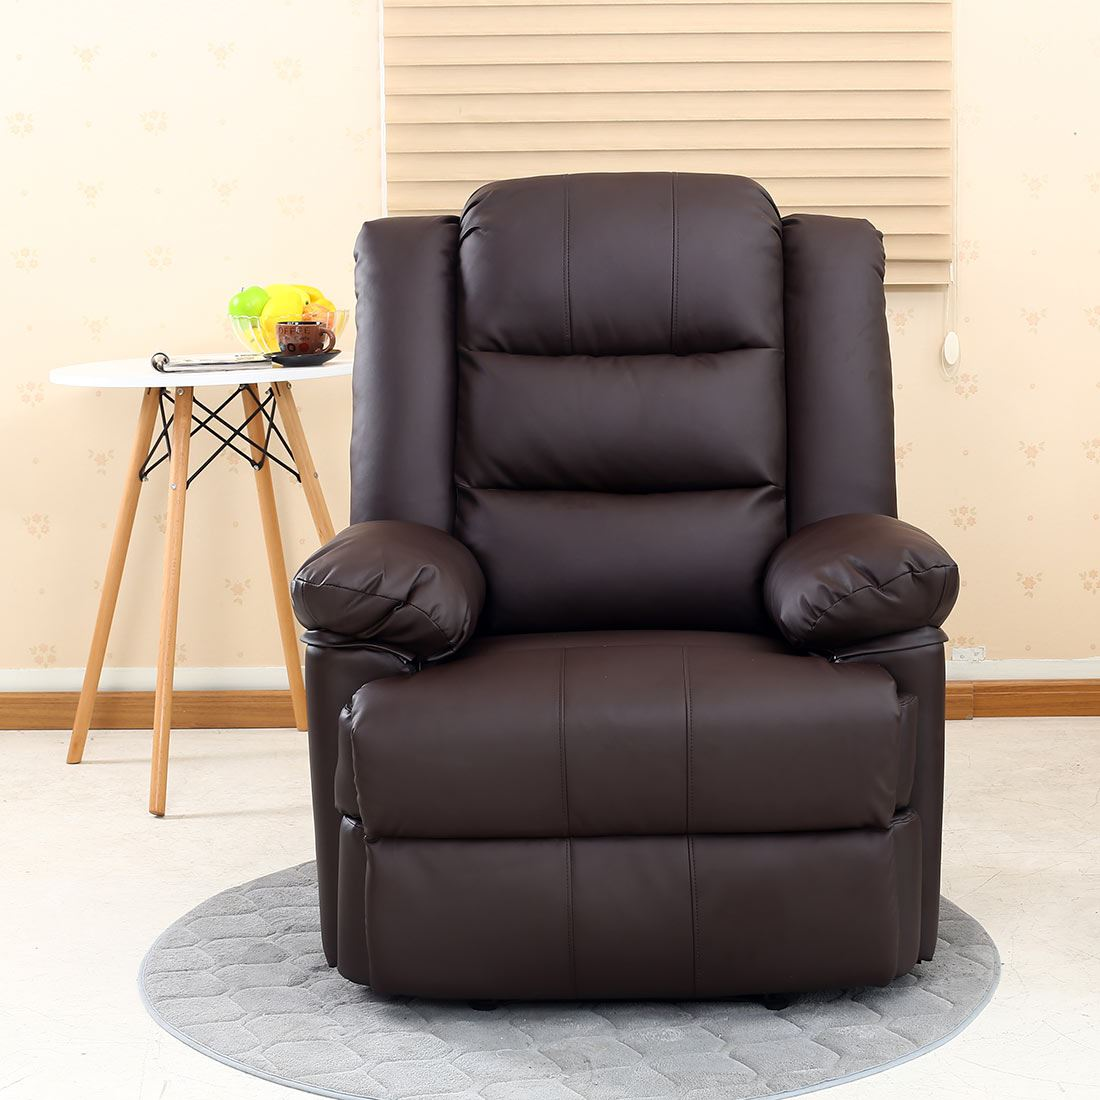 brown leather recliner sofa uk sizes of sectional sofas loxley armchair home lounge